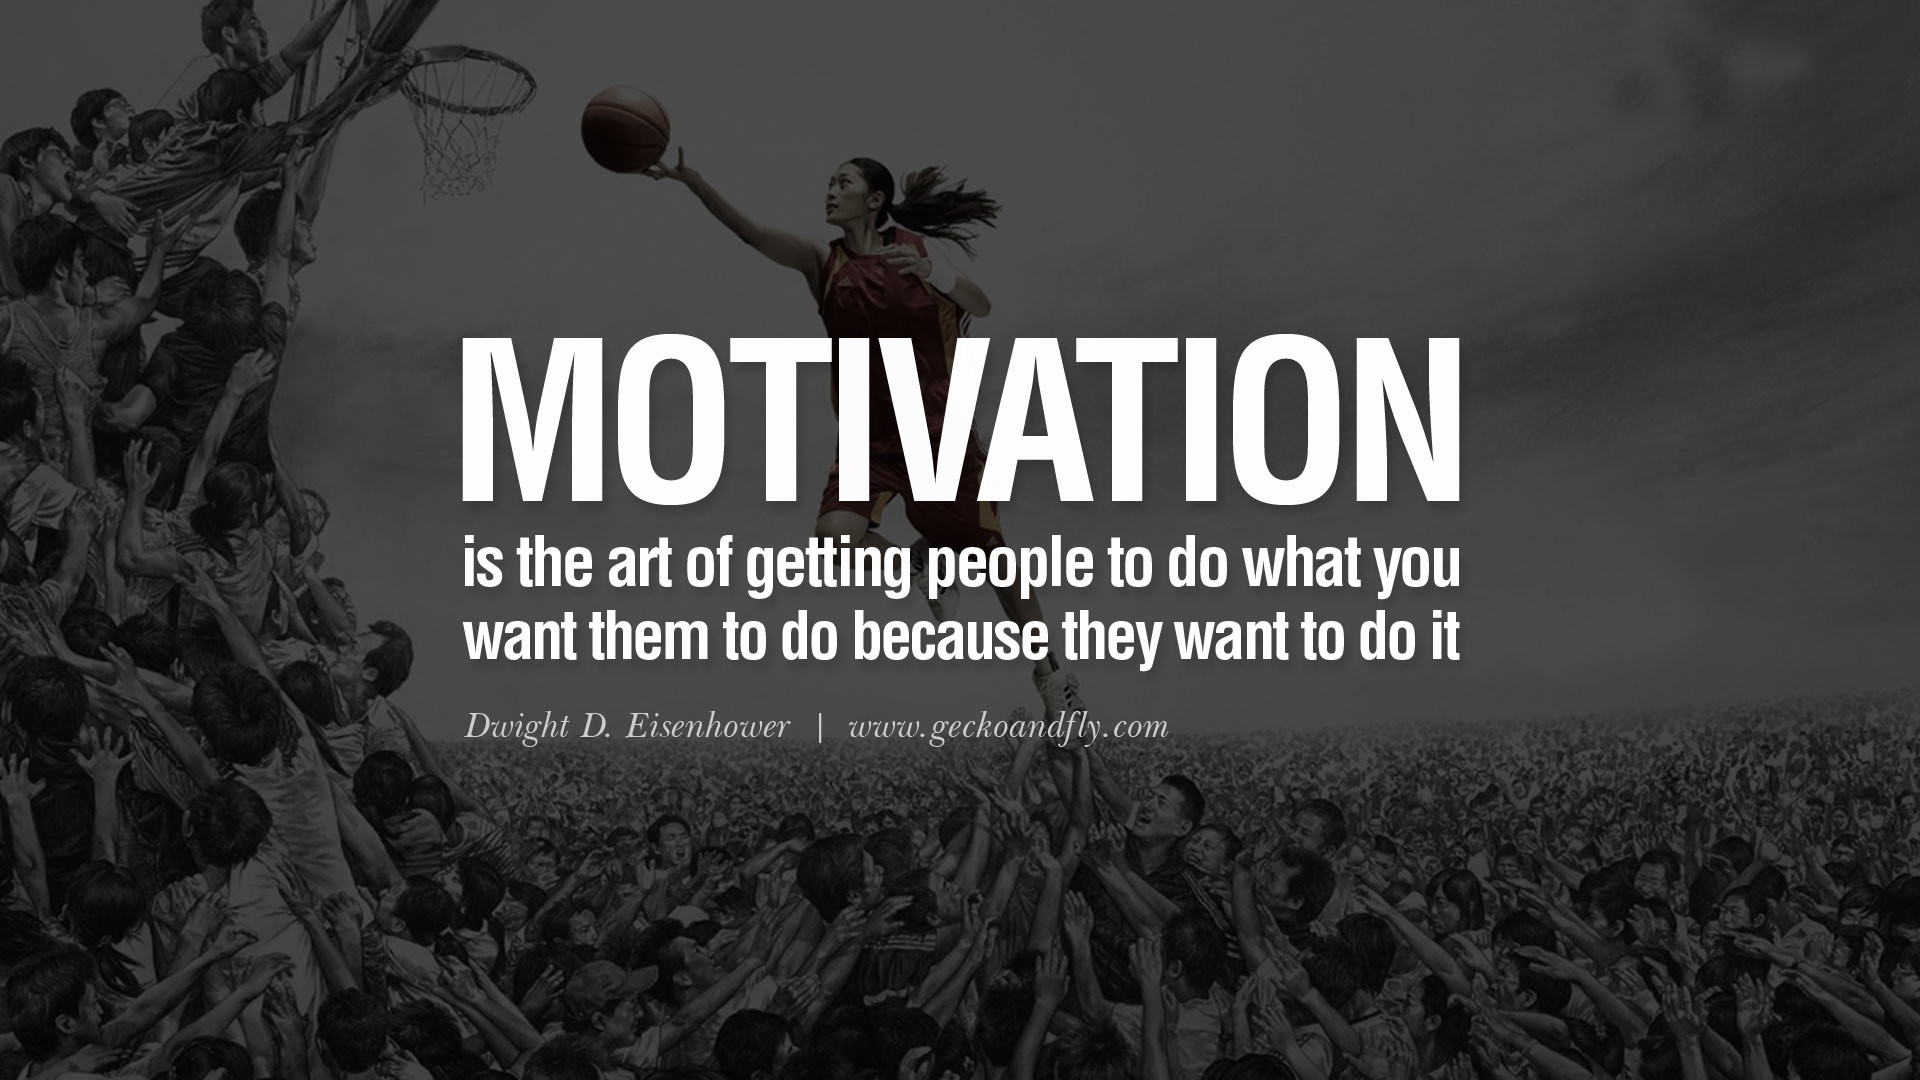 Sport Wallpaper Motivational Quotes: Motivational Workout Wallpaper (75+ Images